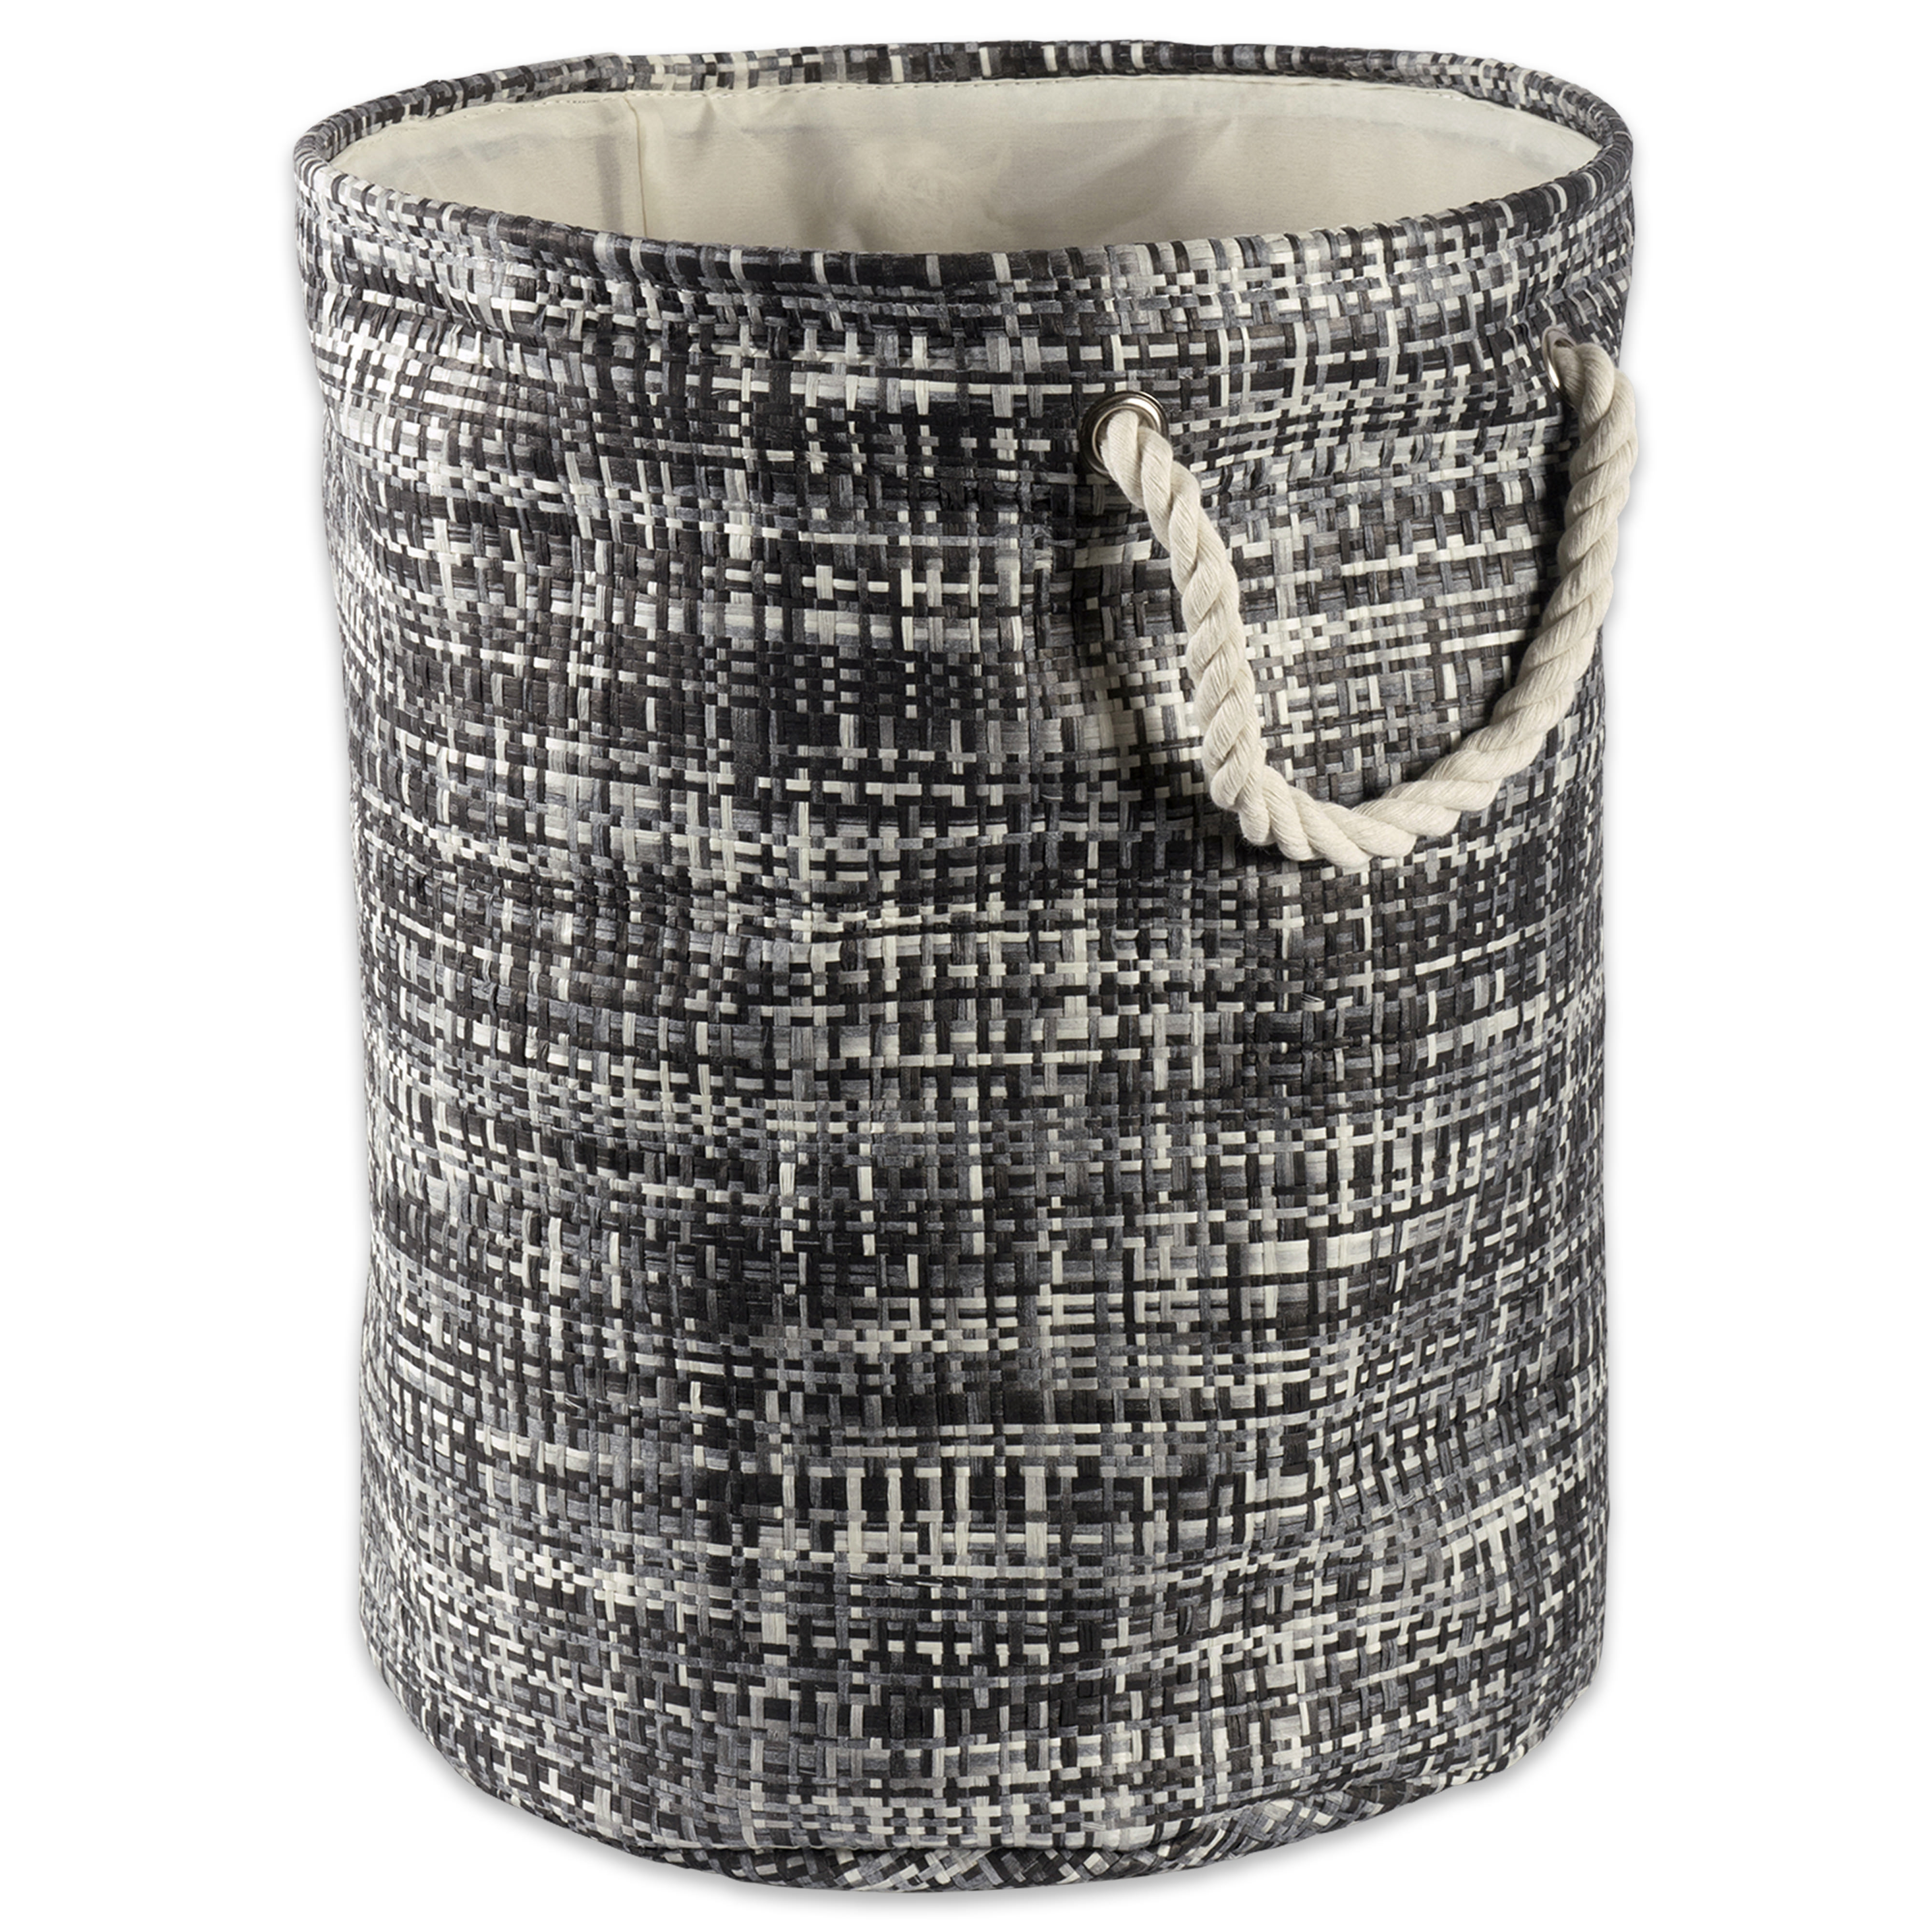 """Design Imports Paper Bin Tweed Black Round Small, 14""""x14""""x12"""", 100% Natural Woven Paper, Black"""